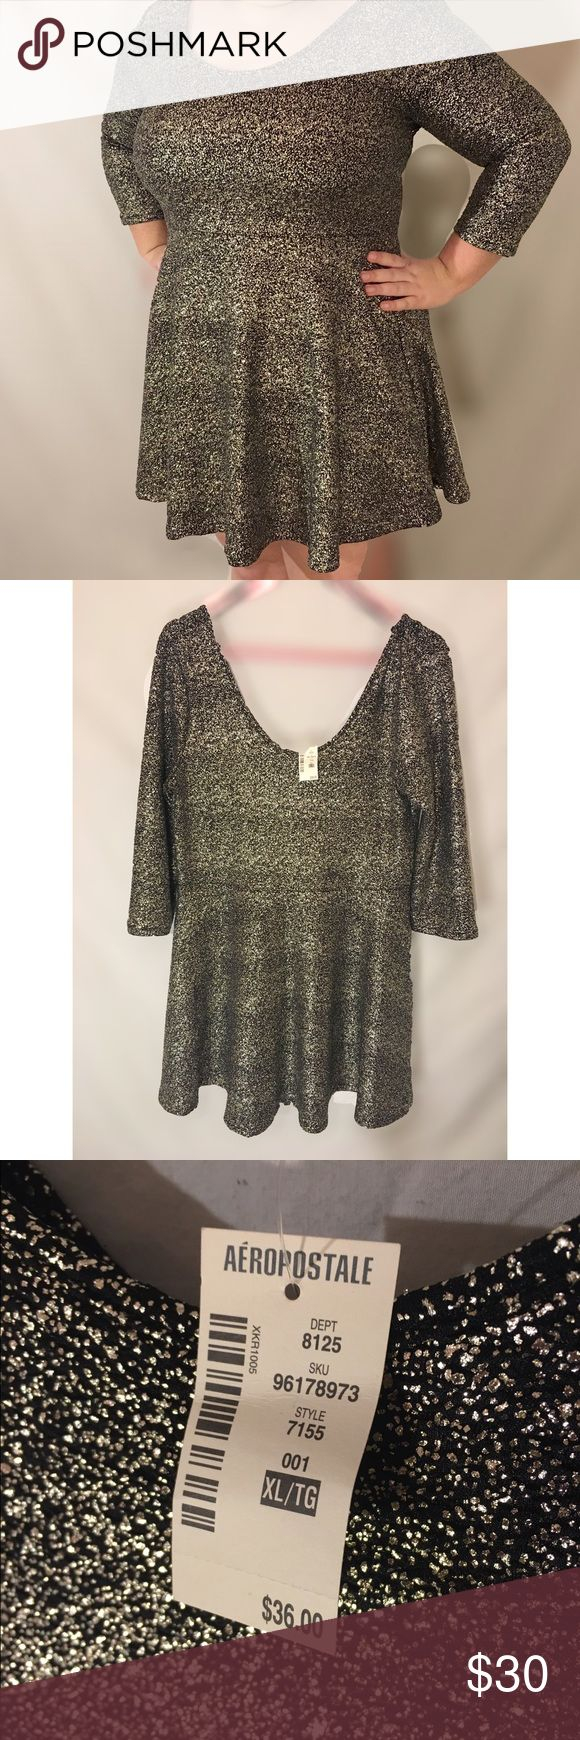 Bethany Mota Aeropostale Metallic Skater Dress XL New with tags. Very stretchy material, Size XL but pictured here on an XXL model. Hits right above the knee. Aeropostale Dresses Mini